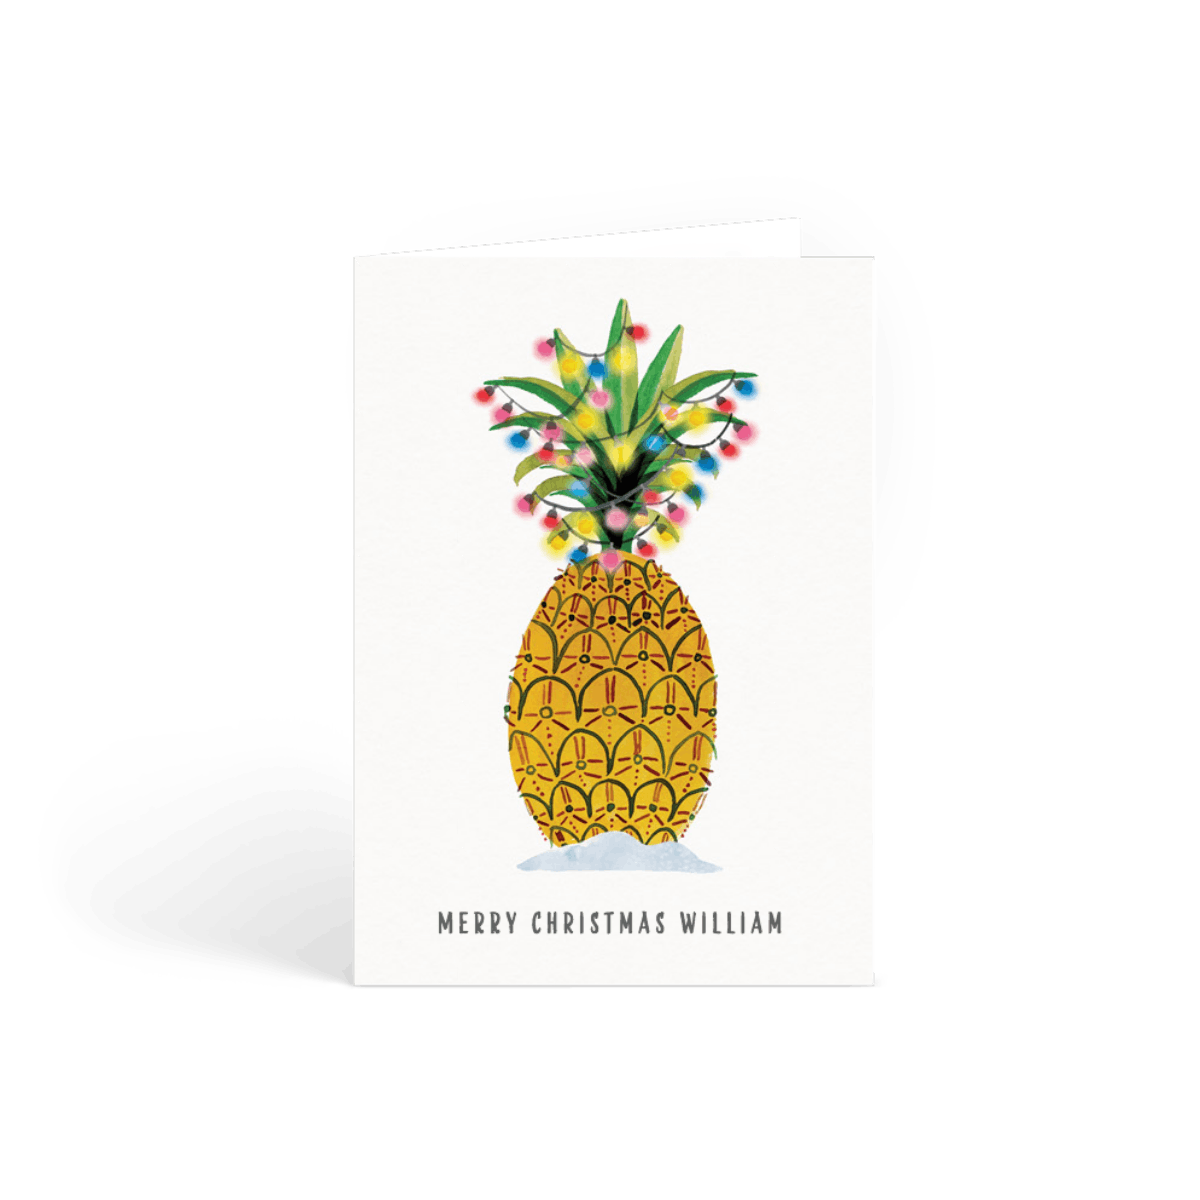 Https%3a%2f%2fwww.papier.com%2fproduct image%2f14331%2f2%2fchristmas pineapple 3827 front 1542374655.png?ixlib=rb 1.1